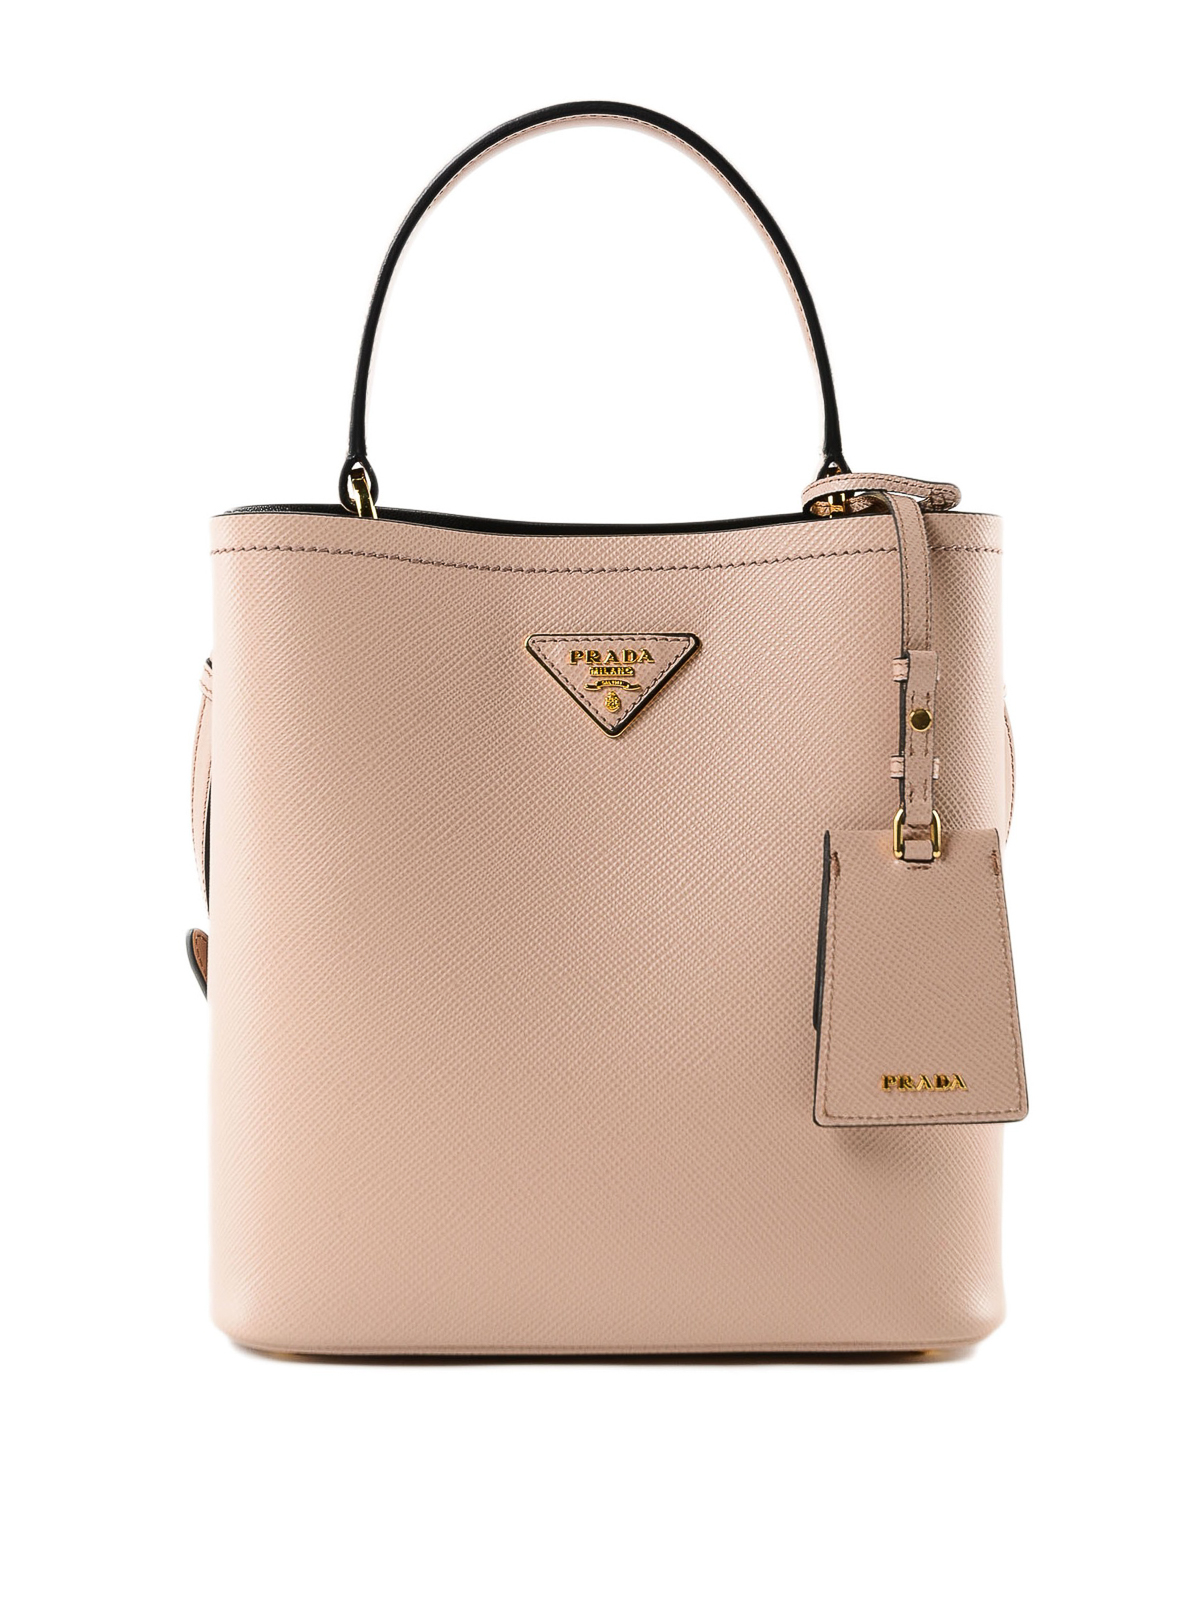 Prada - Saffiano leather double bucket bag - Bucket bags ... f1f3f13152ce5